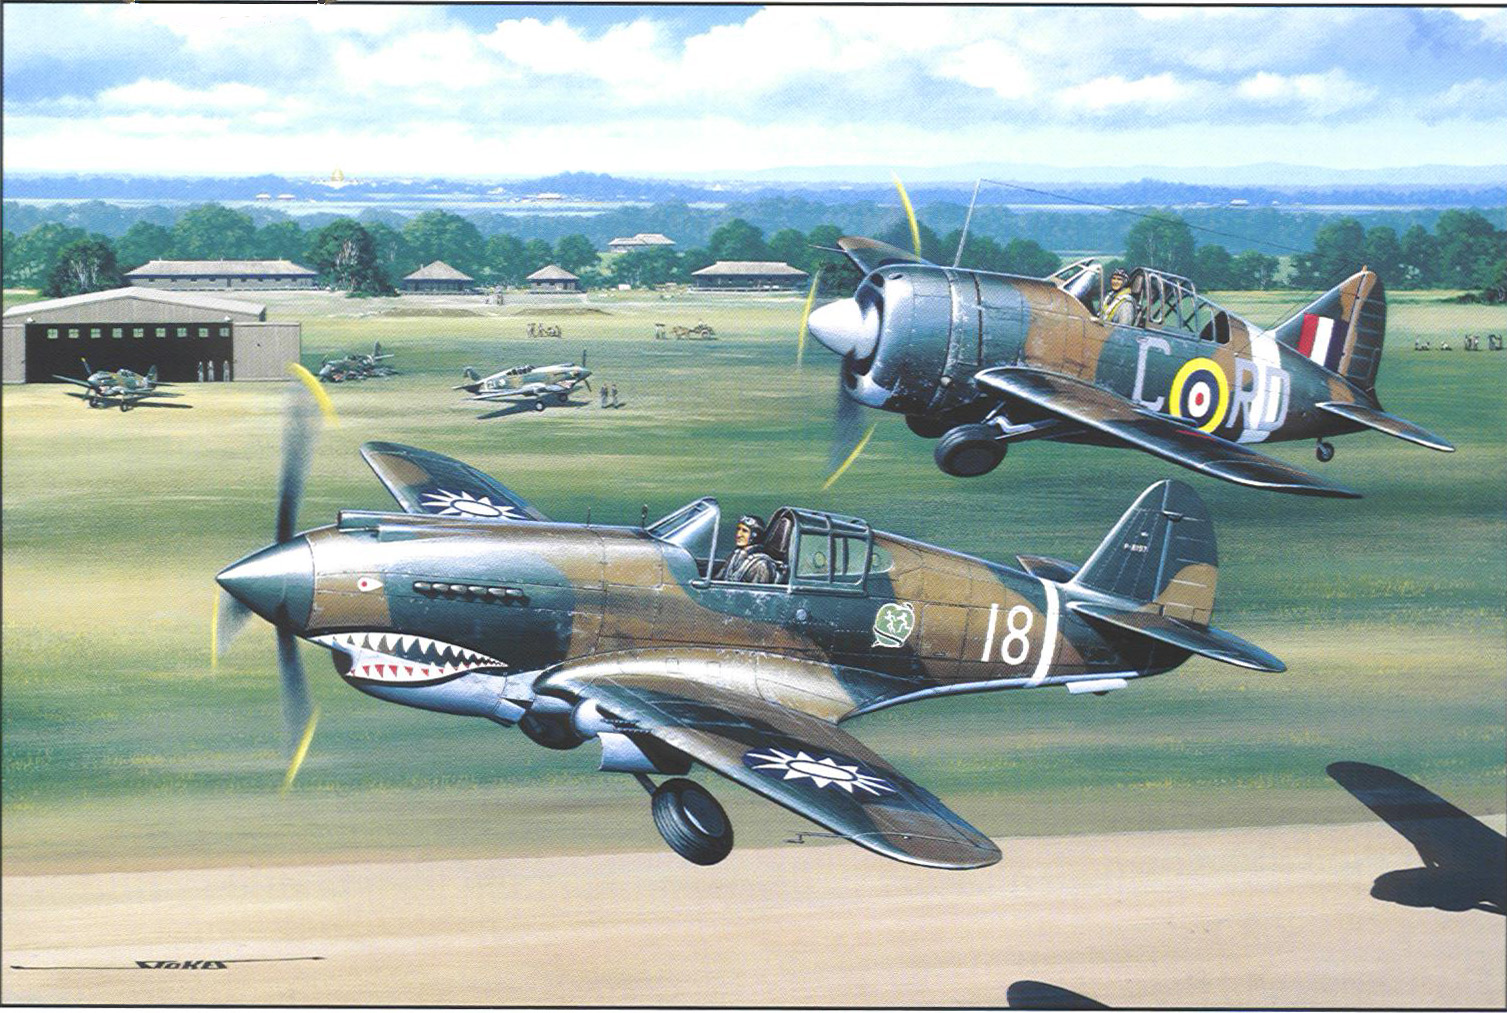 stokes flying tigers And buffalos